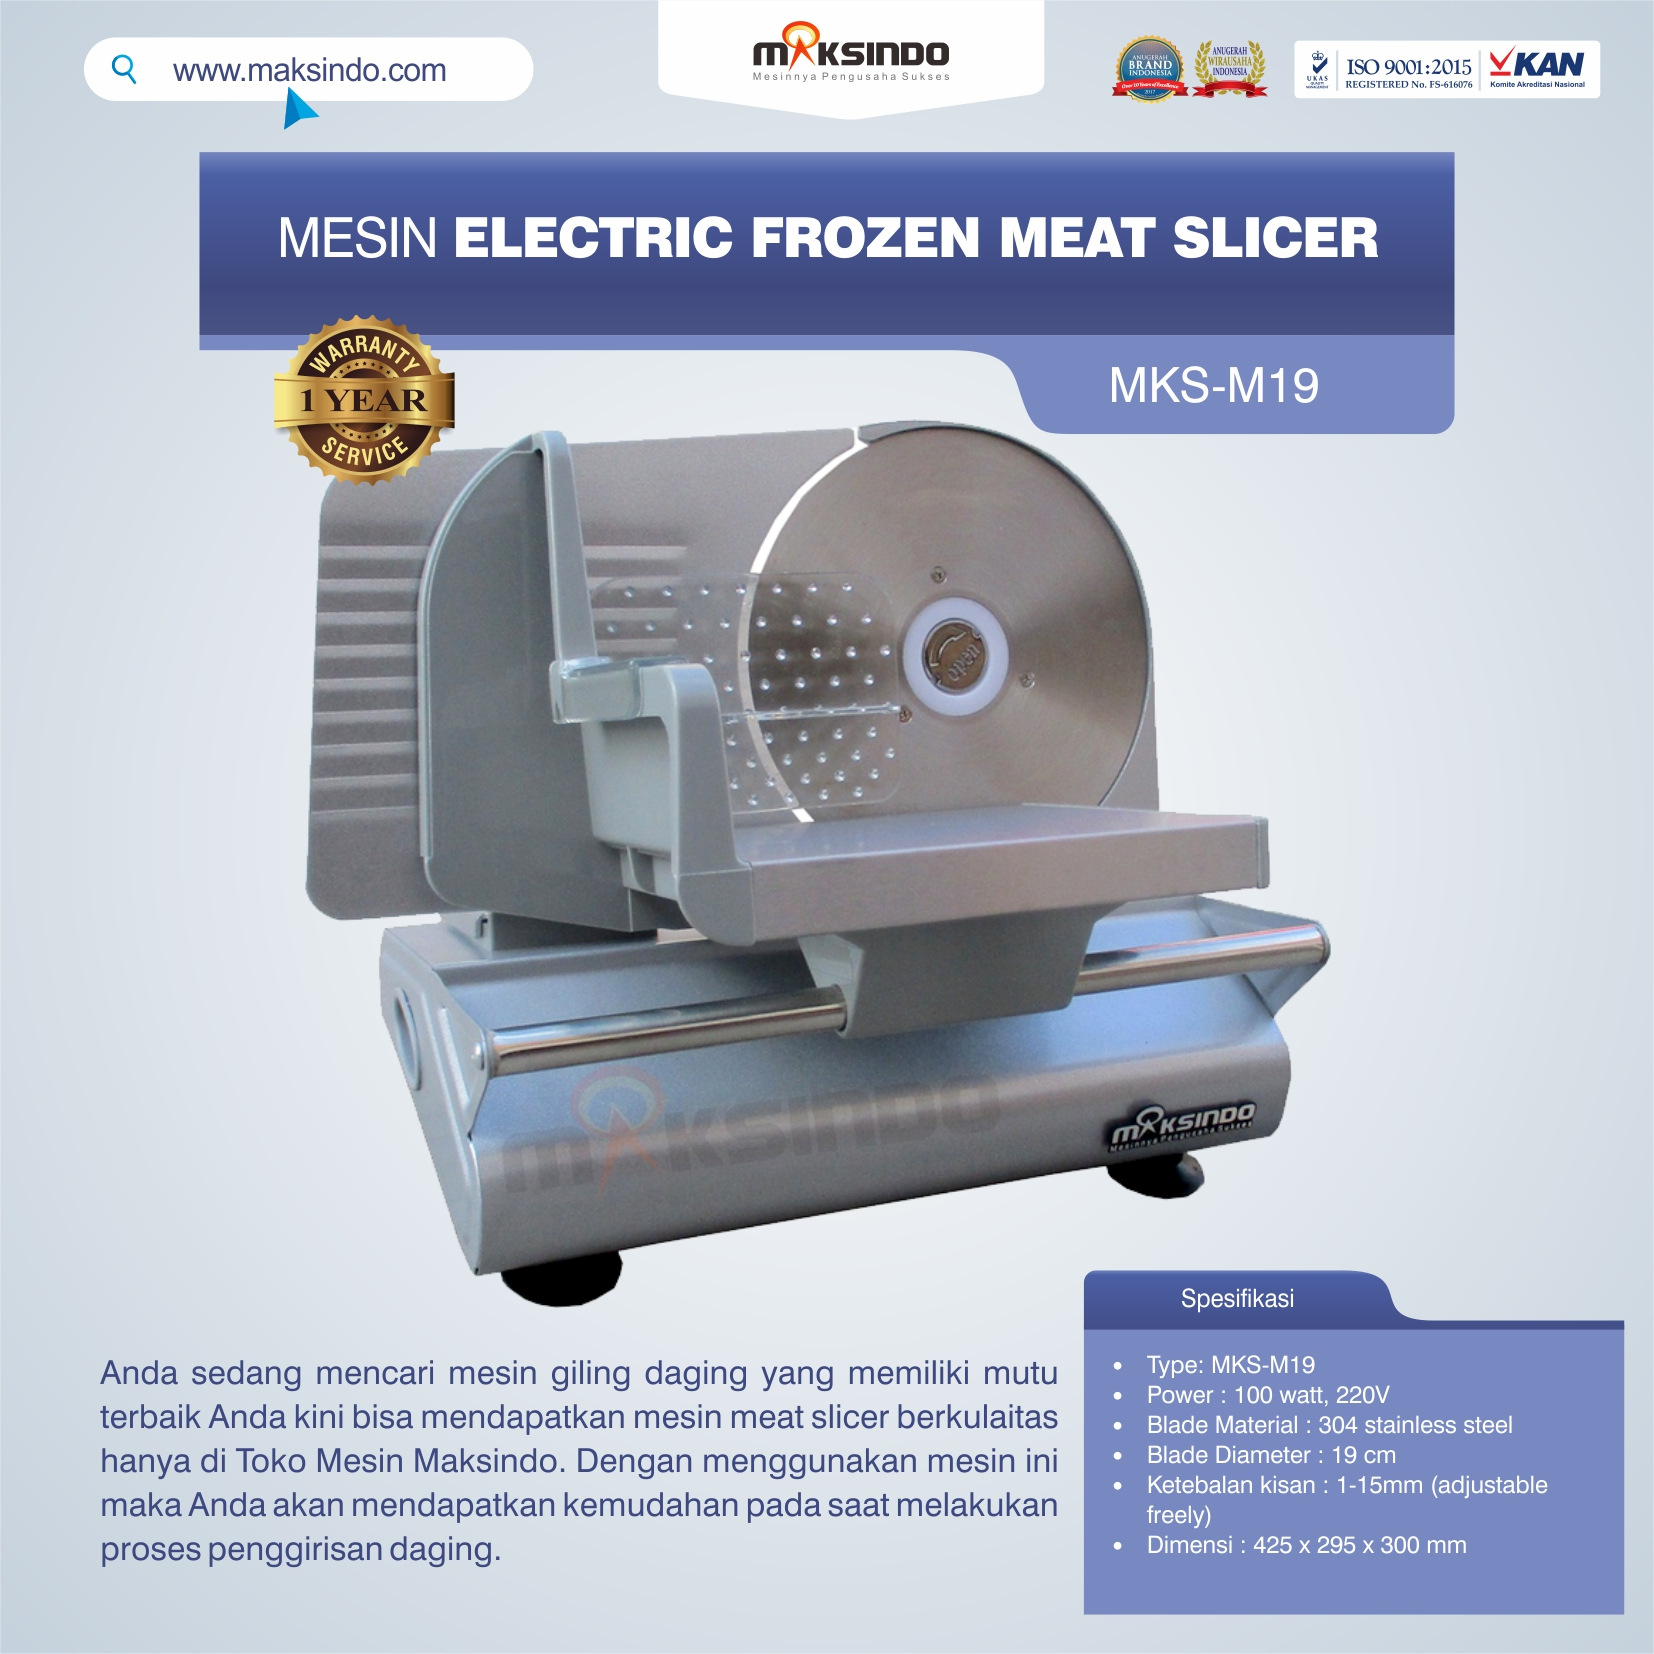 Jual Mesin Electric Frozen Meat Slicer MKS-M19 Di Banjarmasin